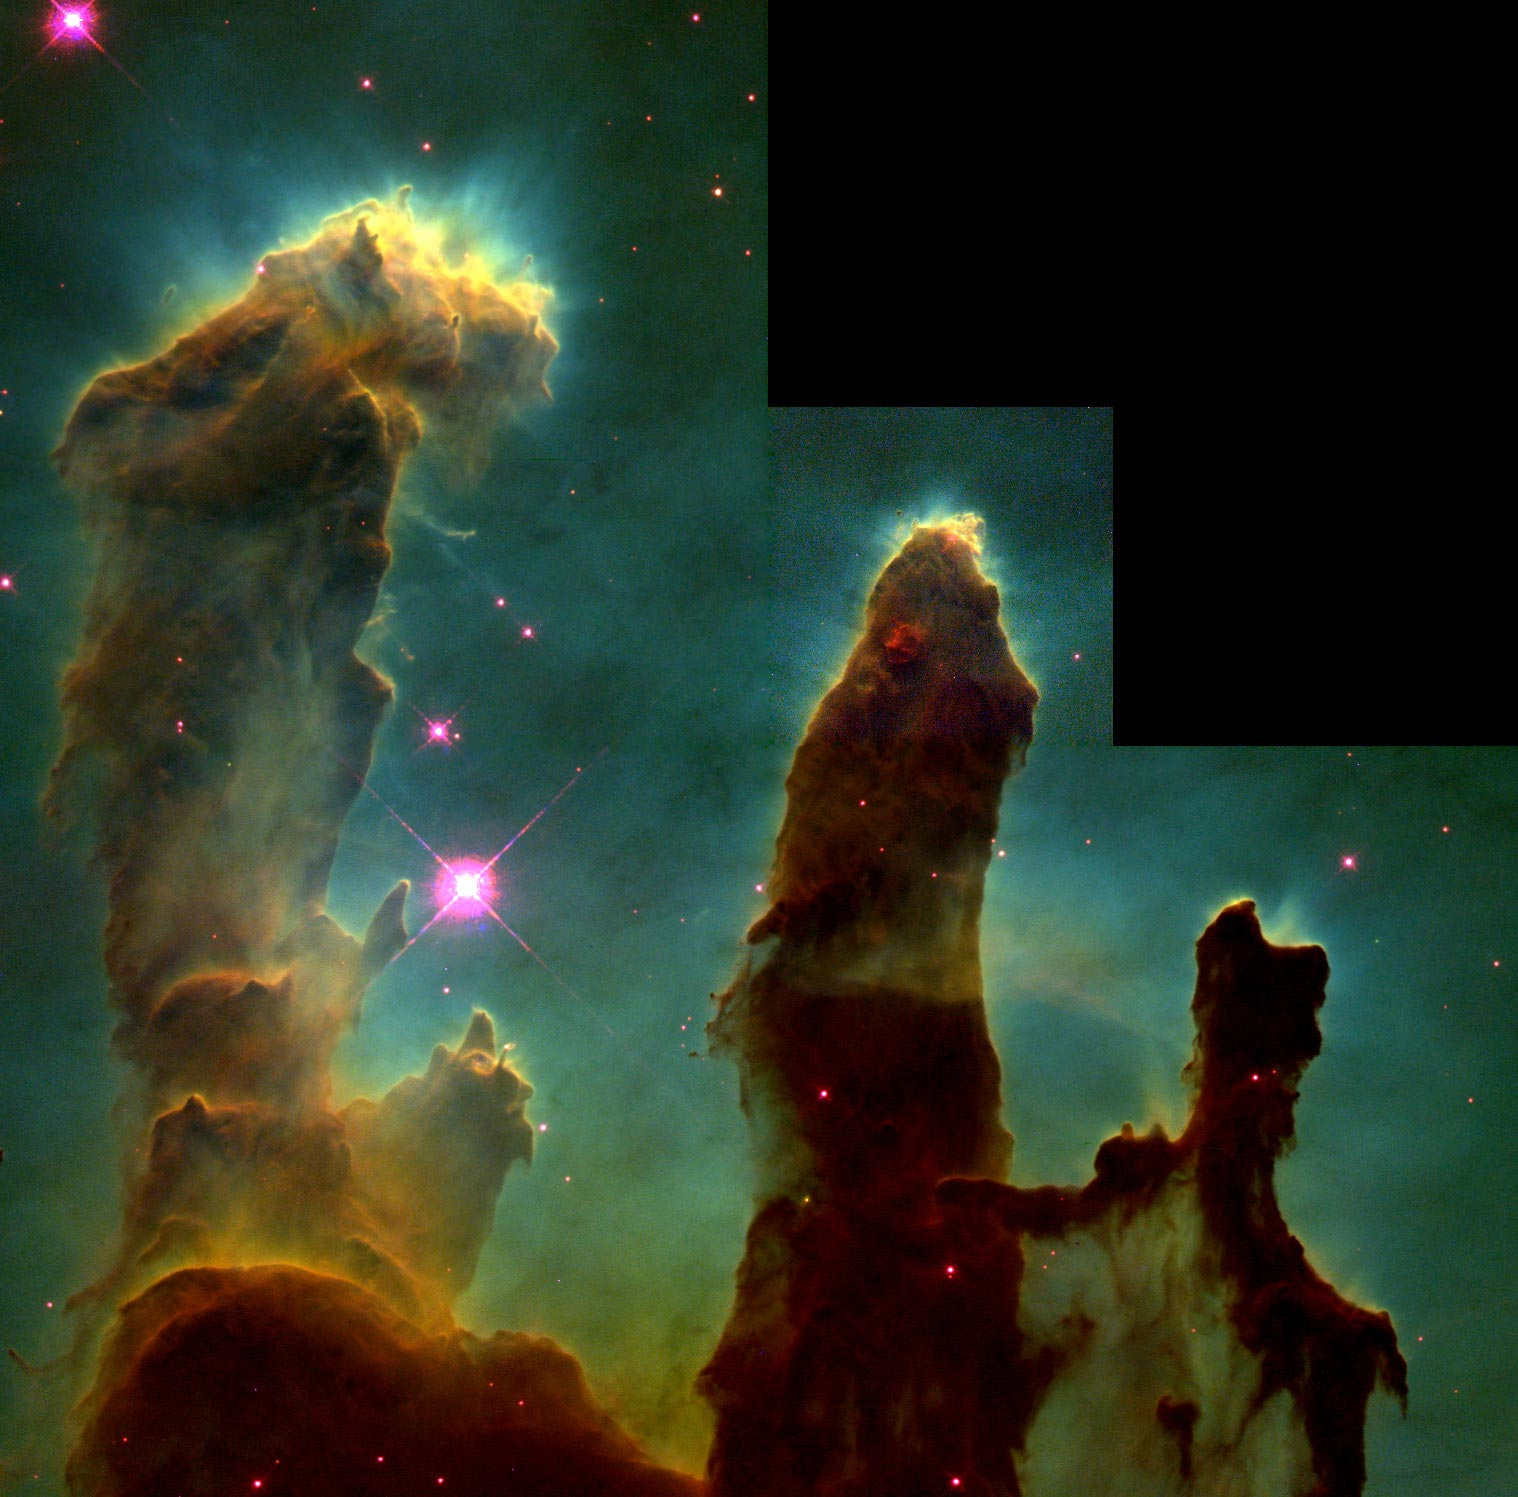 Hubble Images Super High Resolution The Pillars of Creation